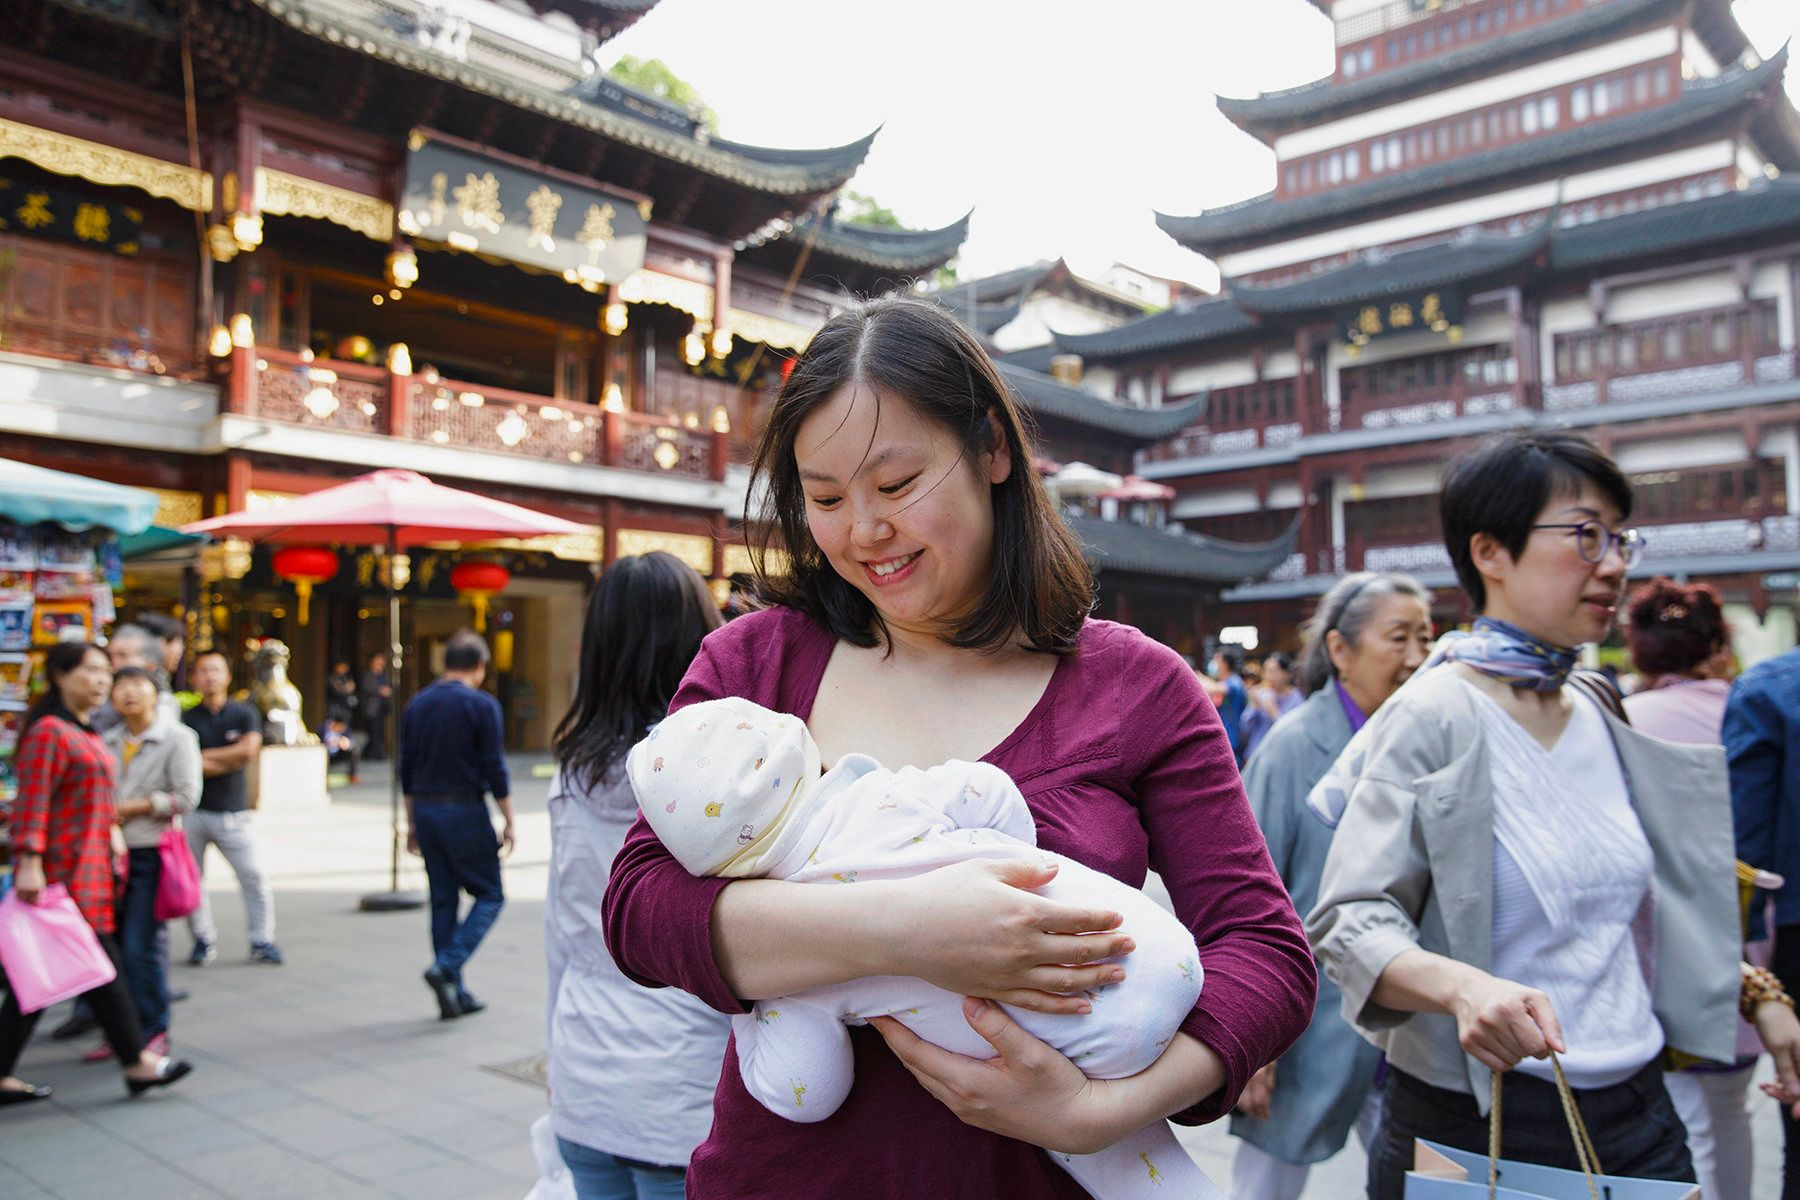 Tanxian, a Chinese mother,nurses her baby in Shanghai.